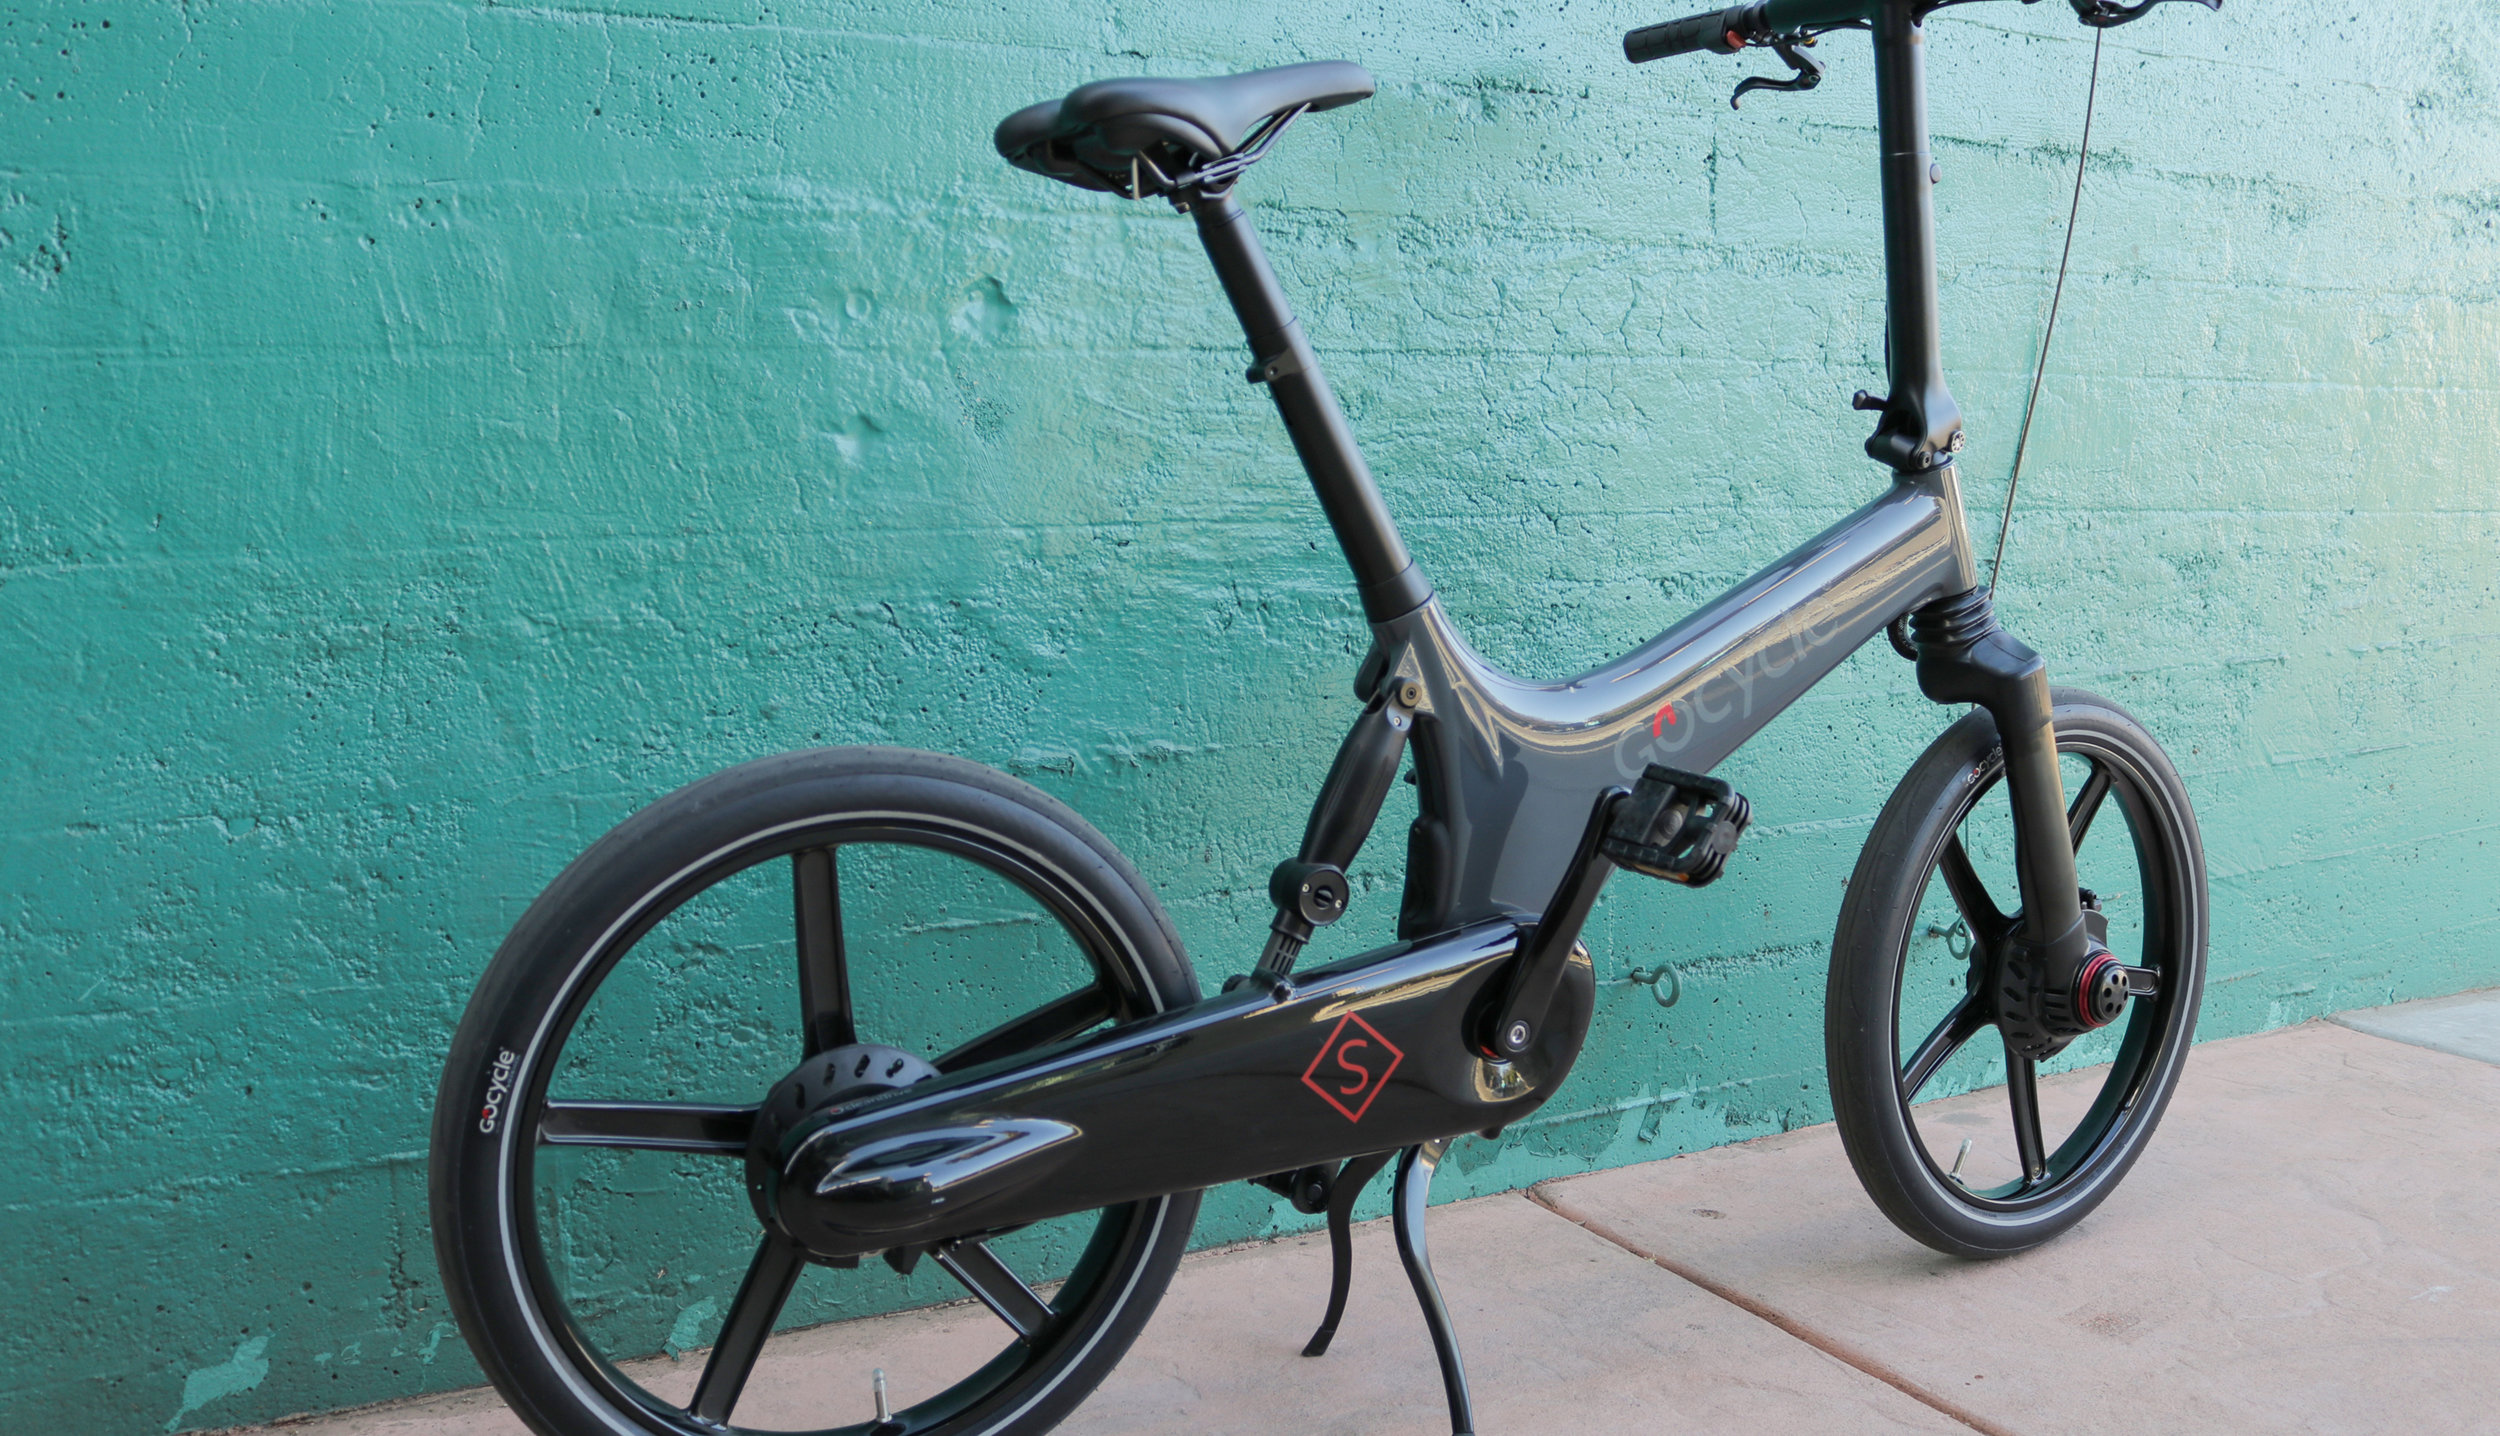 electrified-reviews-gocycle-gs-electric-bike-review-profile-angle-2.jpg